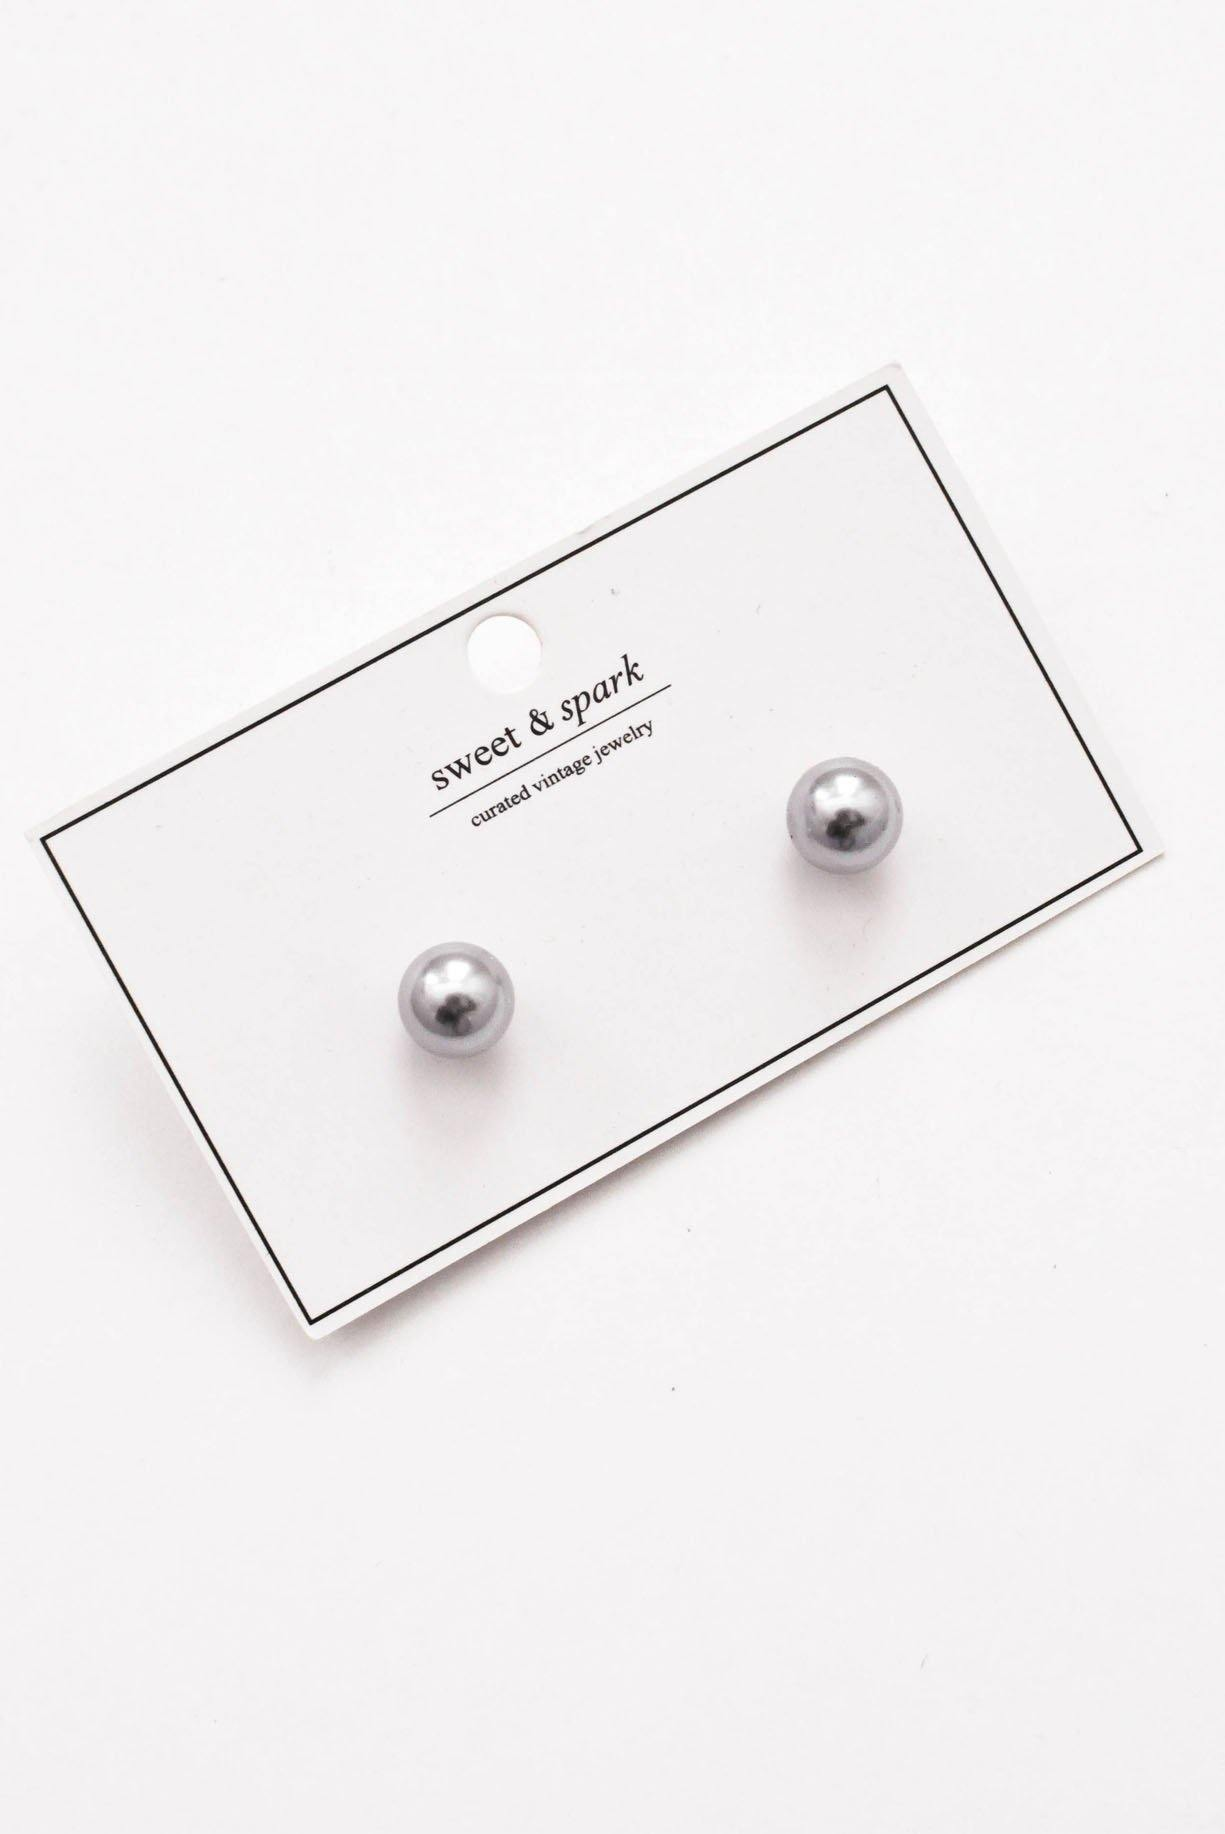 Blue Pearl Pierced Earrings - Sweet & Spark